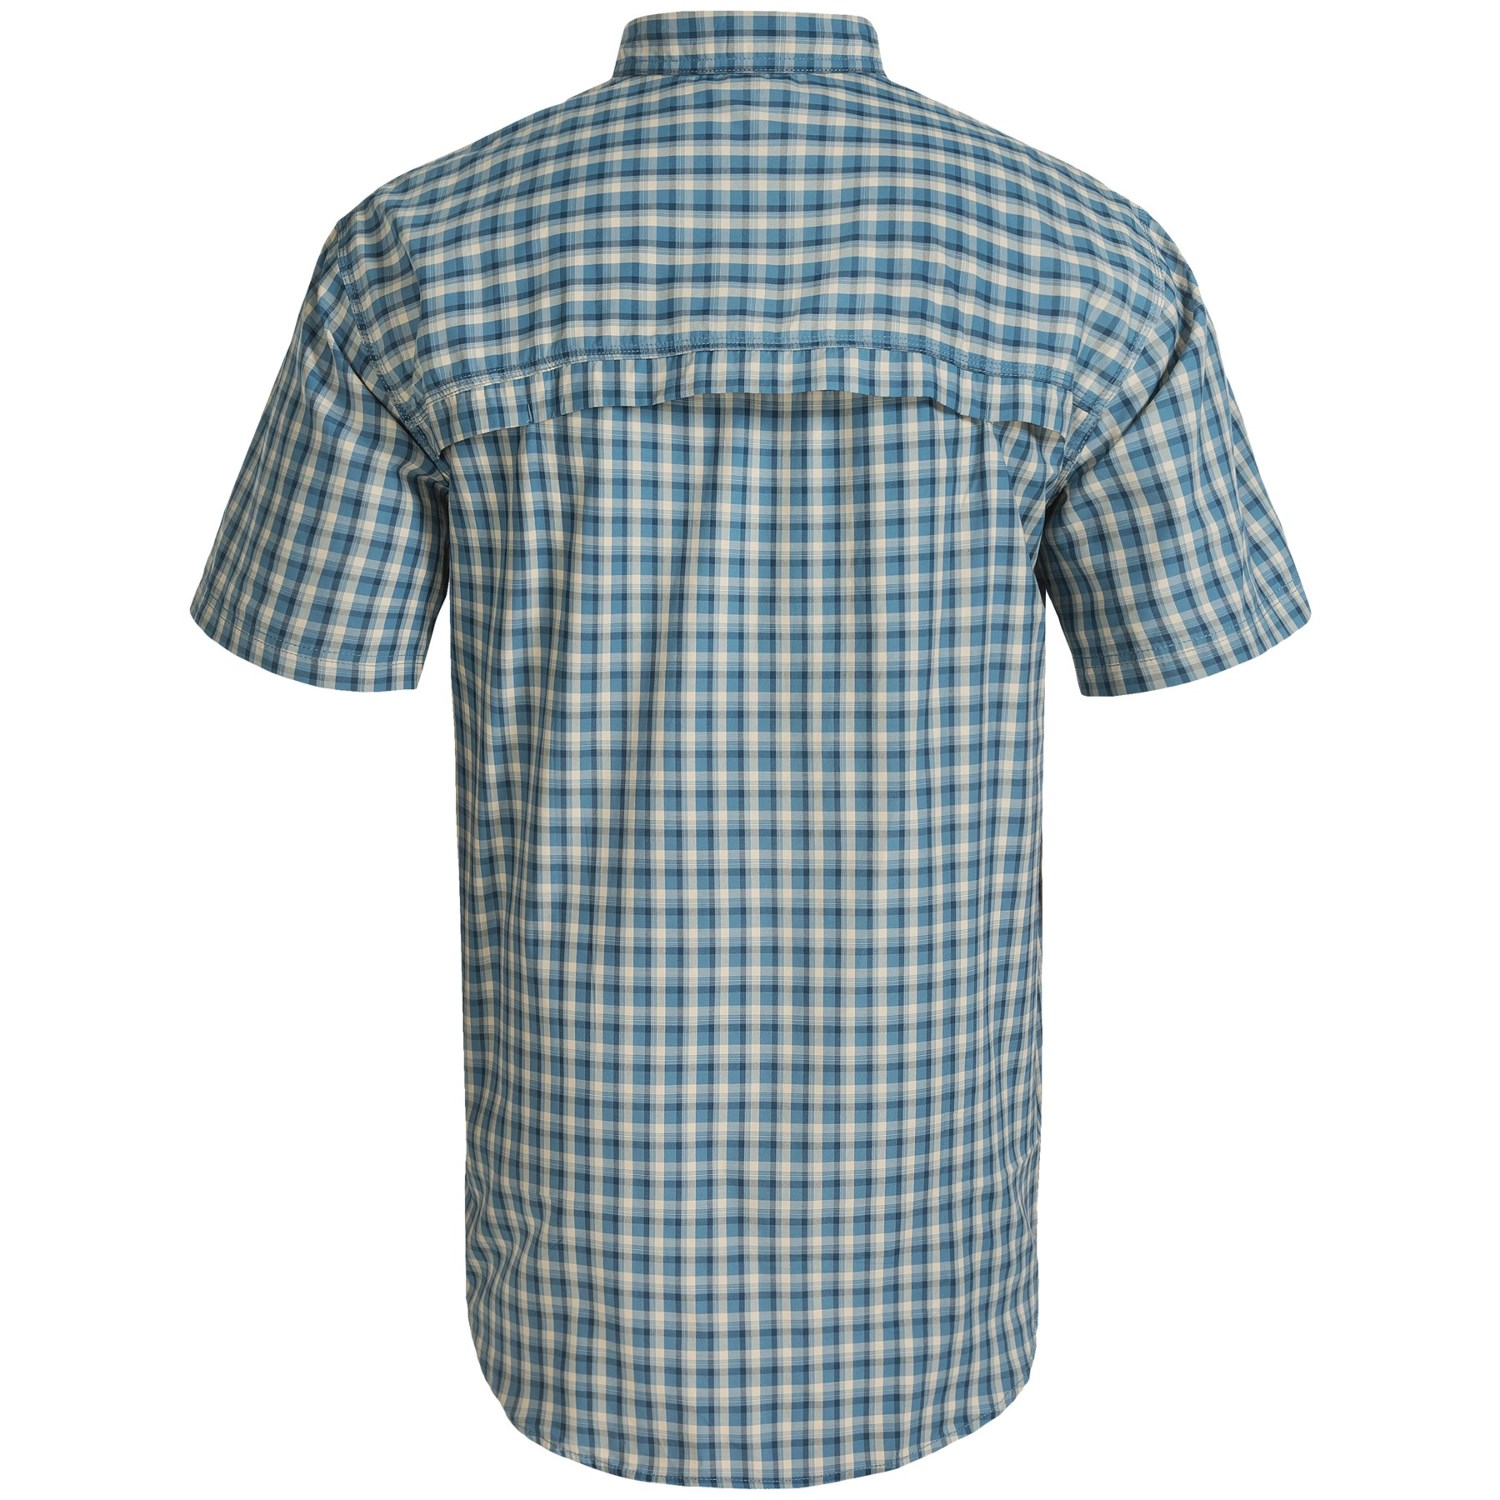 G h bass co fancy explorer shirt for big and tall men for Big and tall quick dry shirts